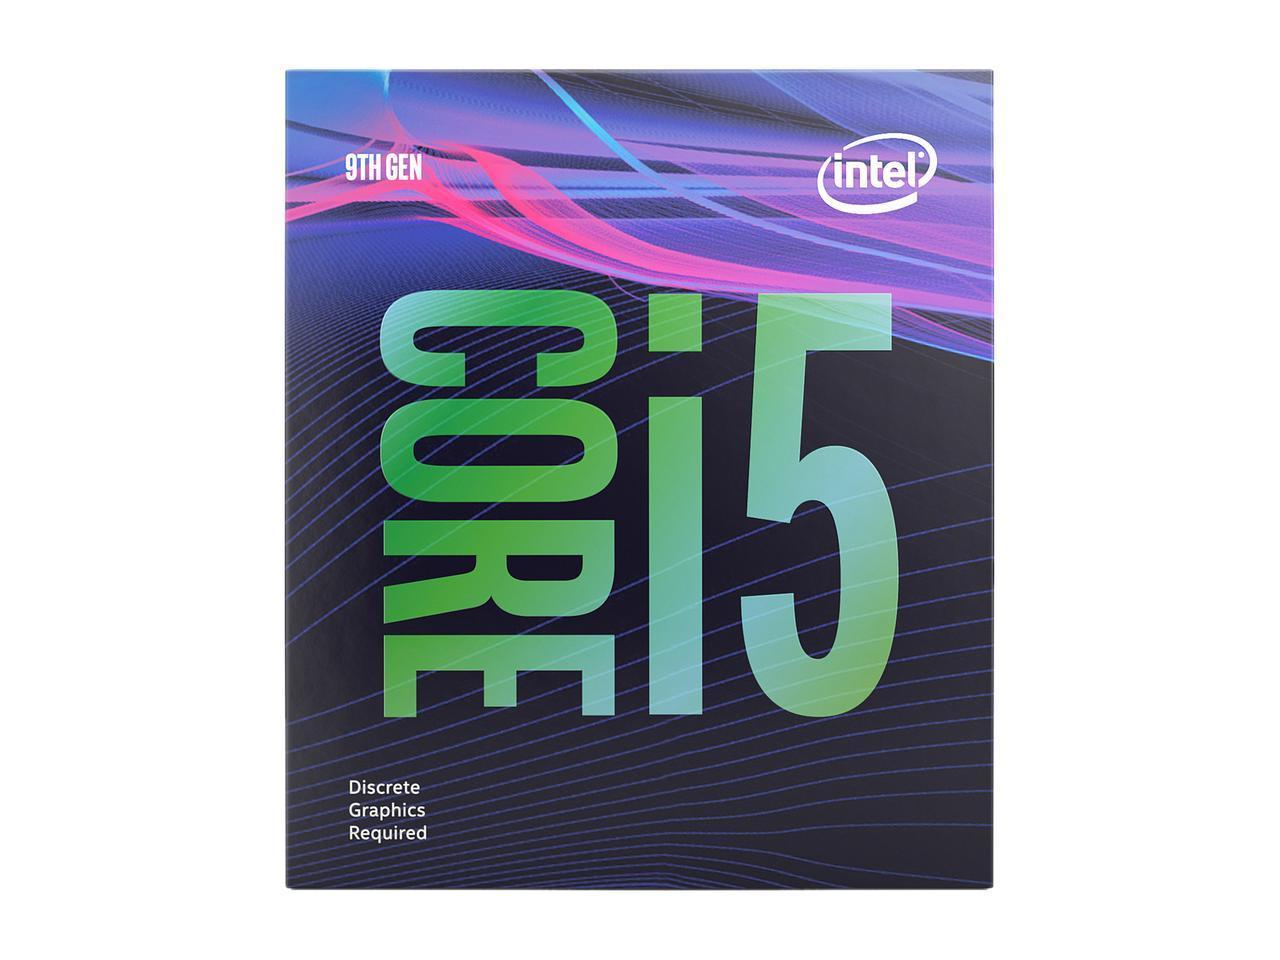 Процесор Intel Coffee Lake Core i5-9500F 3.0GHz (up to 4.40GHz ), 9MB, 65W LGA1151 (300 Series)